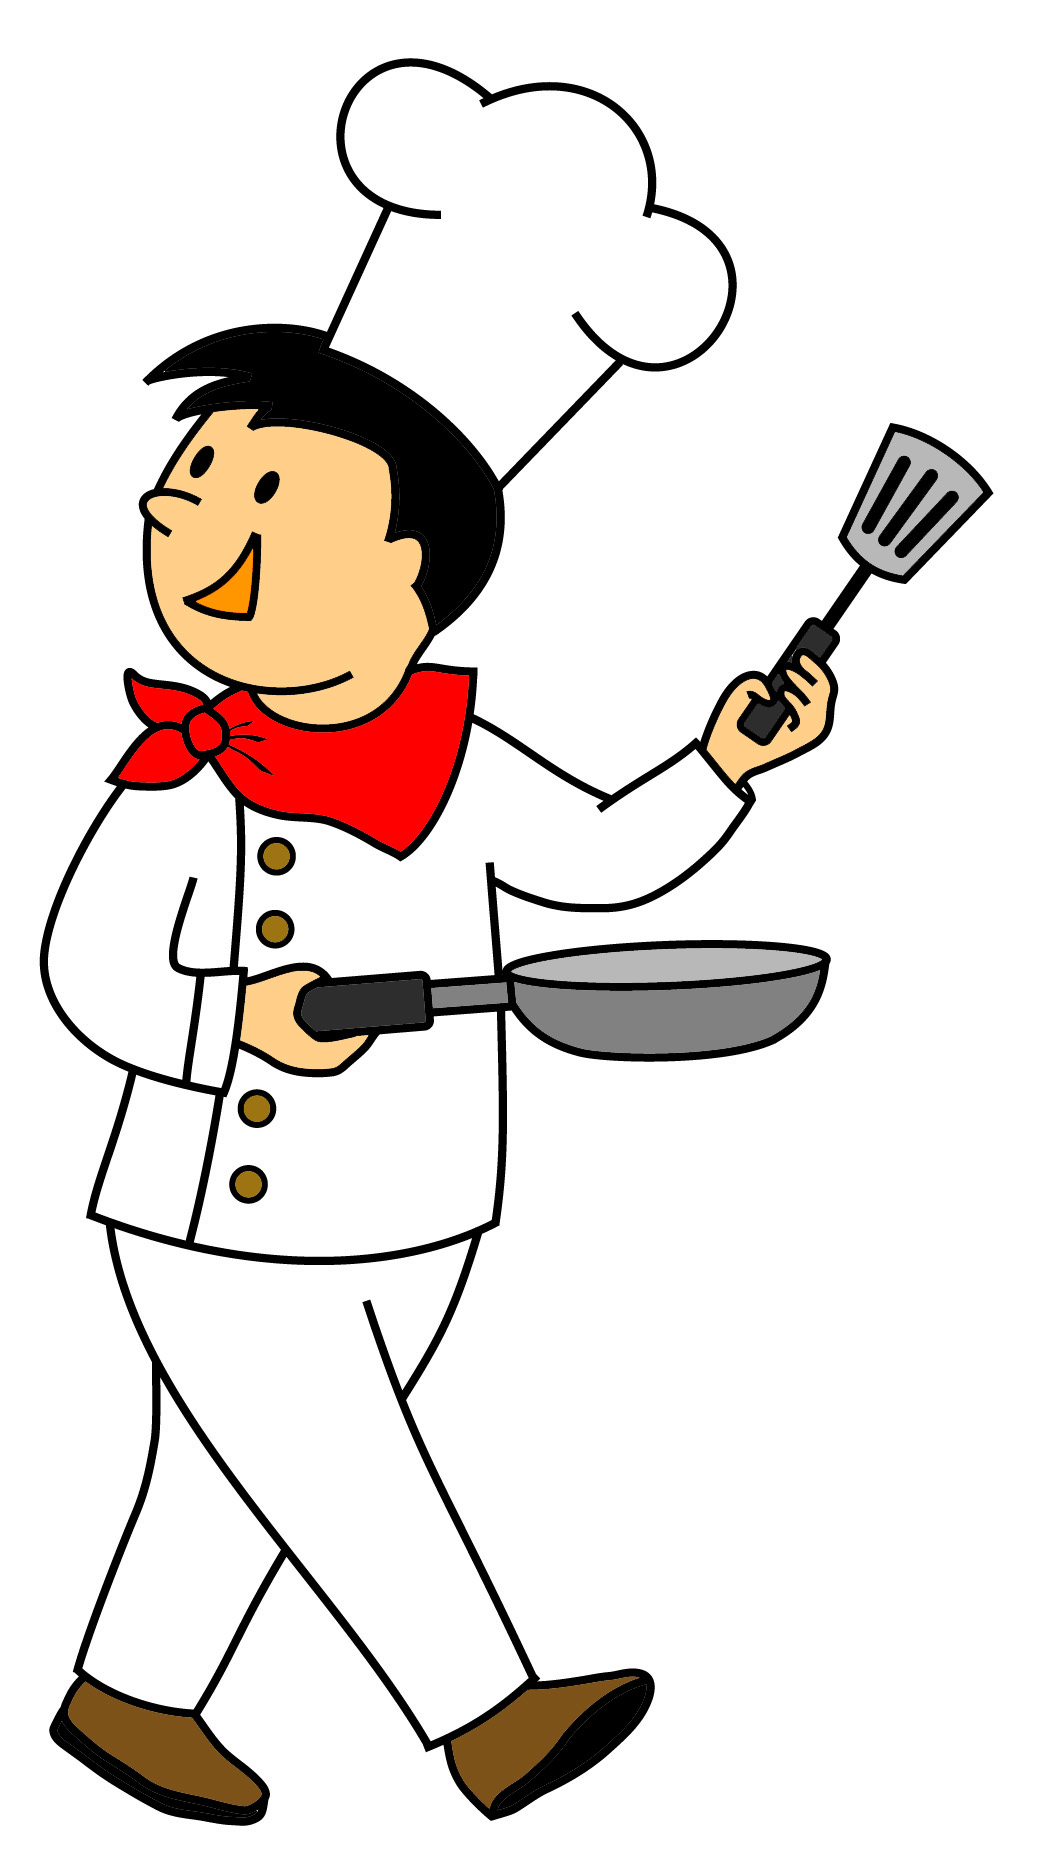 Free chef cartoon cliparts. Cooking clipart culinary